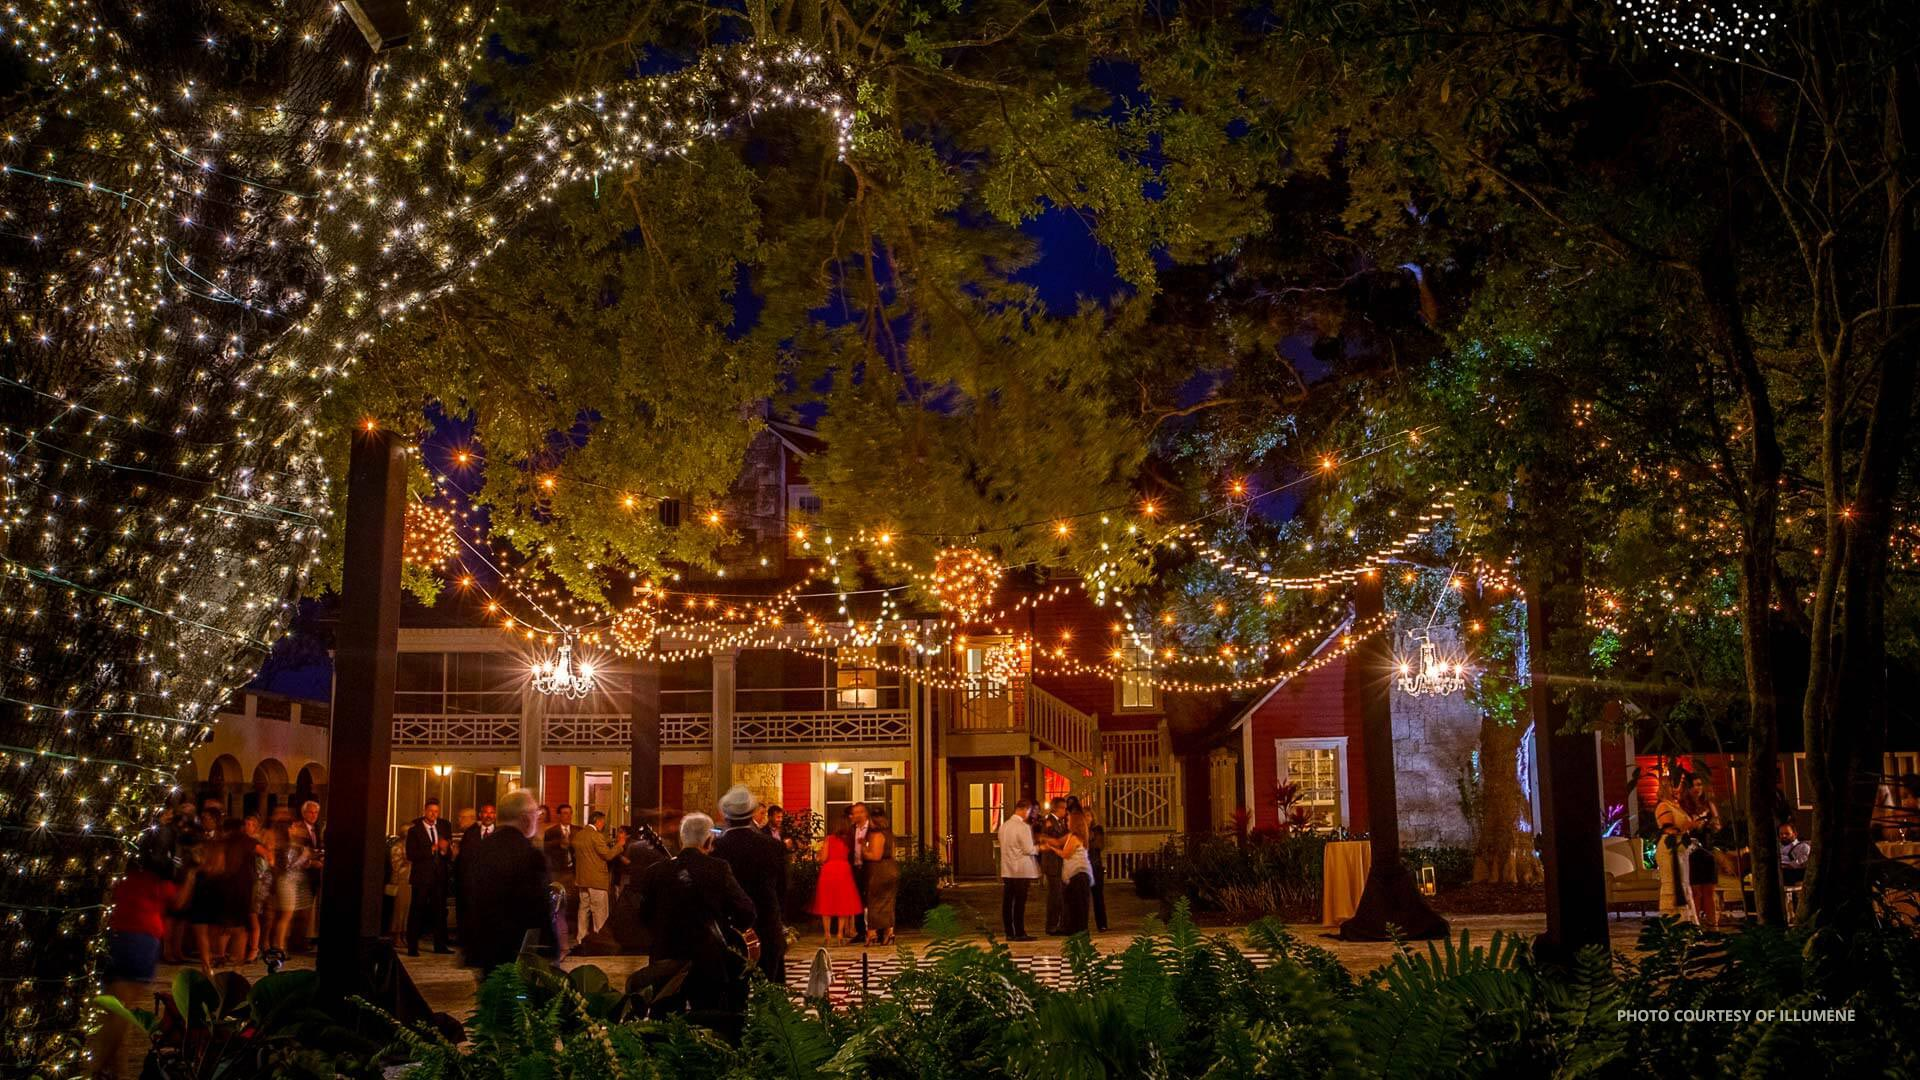 the courtyard lit up at night with custom lighting for a wedding celebration